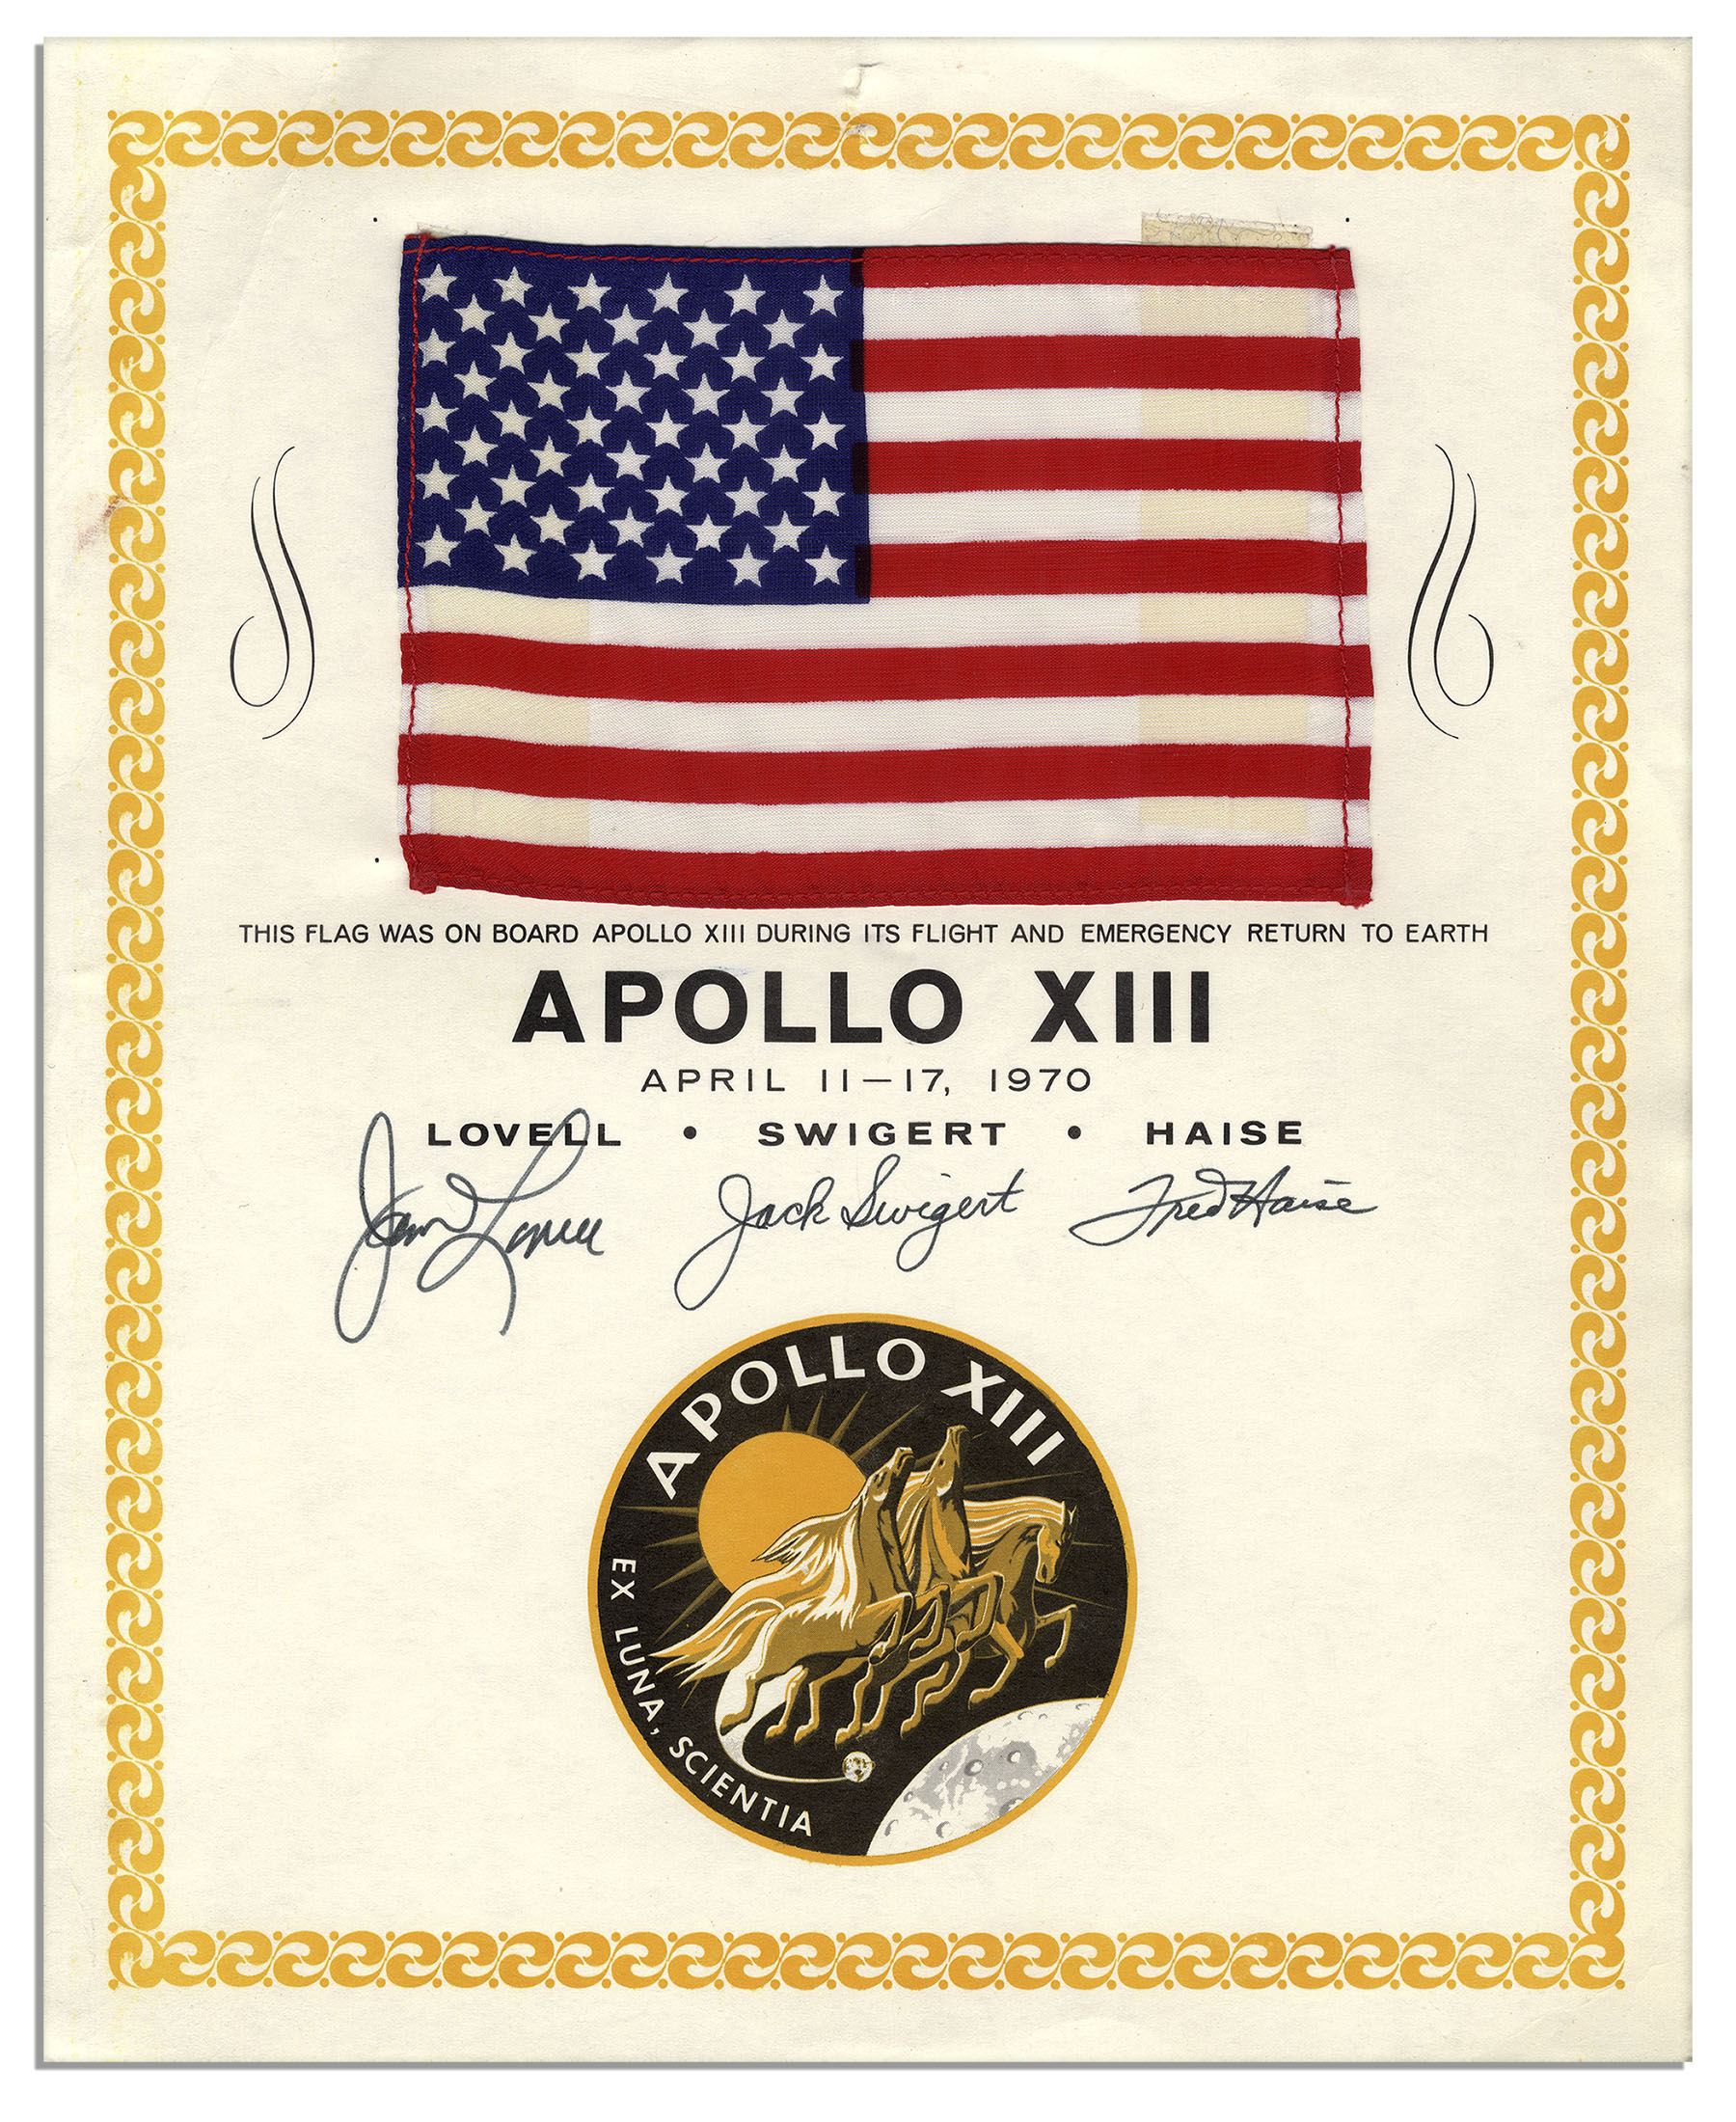 Apollo 13 flown